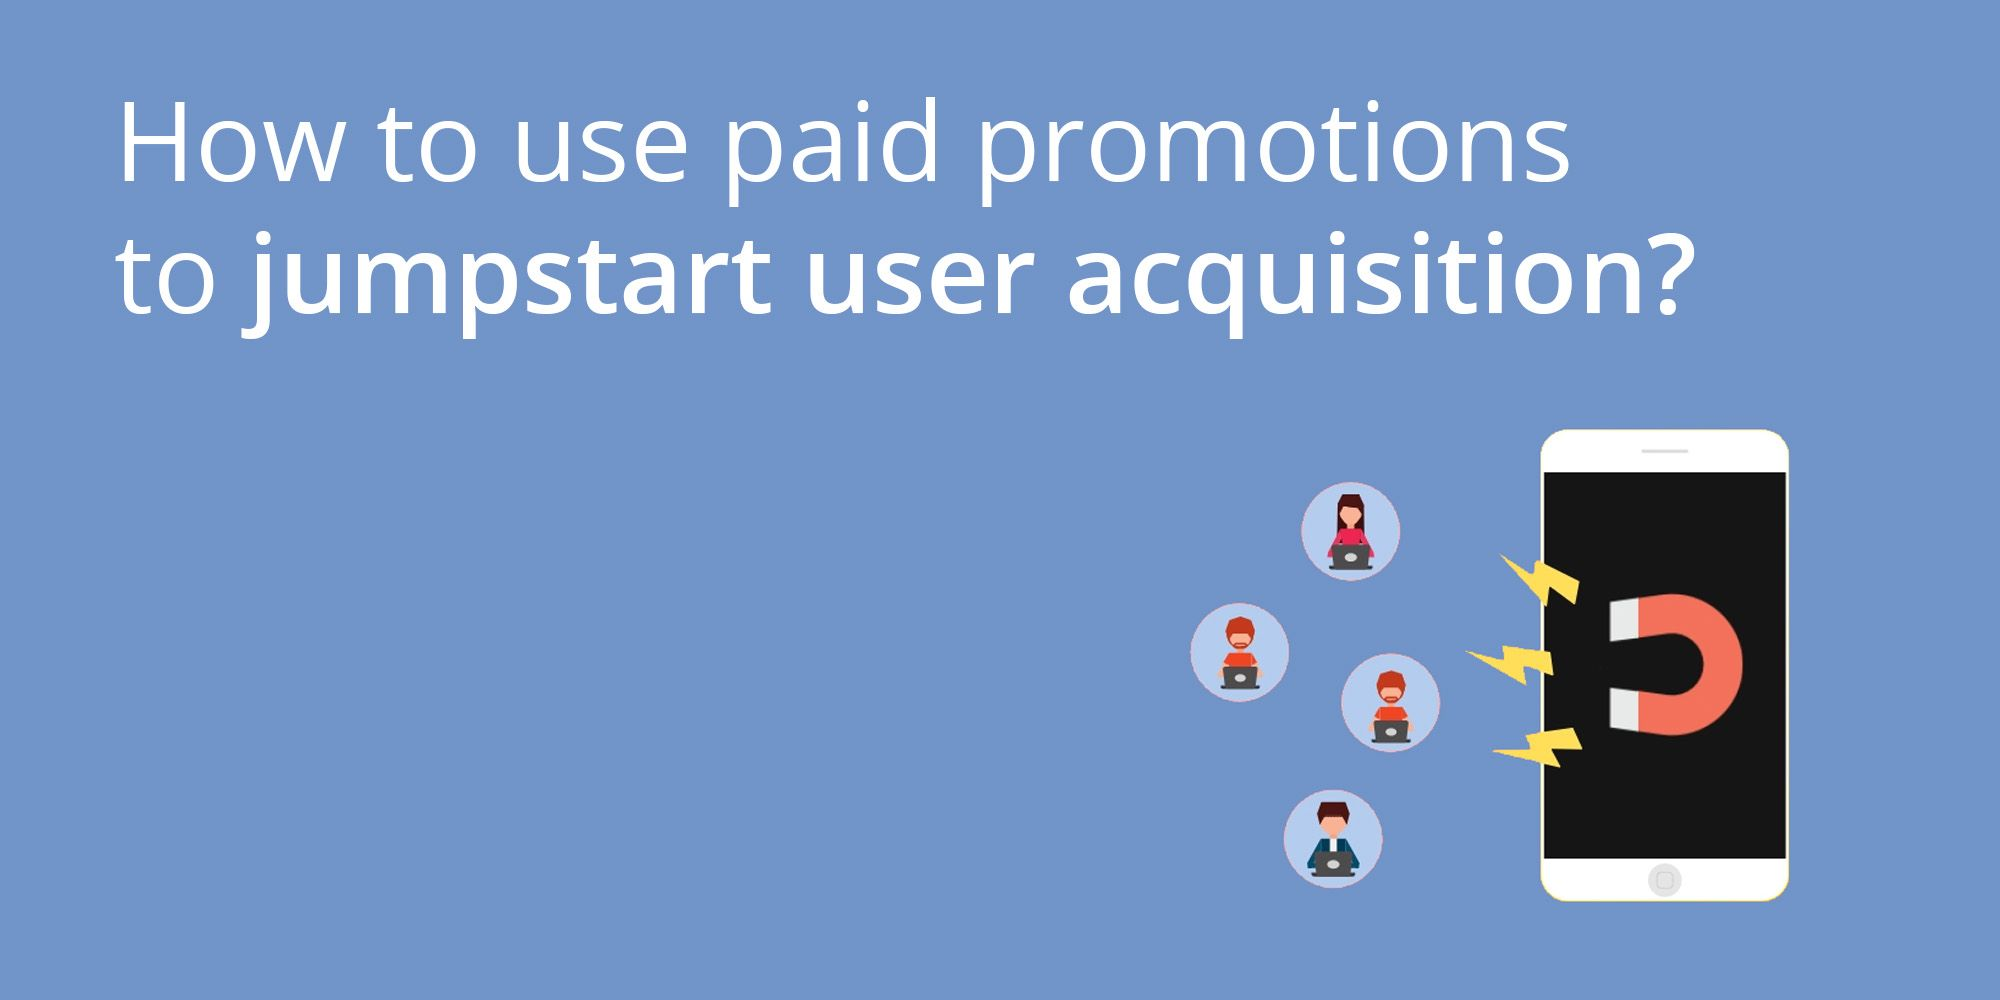 How to use paid promotions to jumpstart user acquisition?